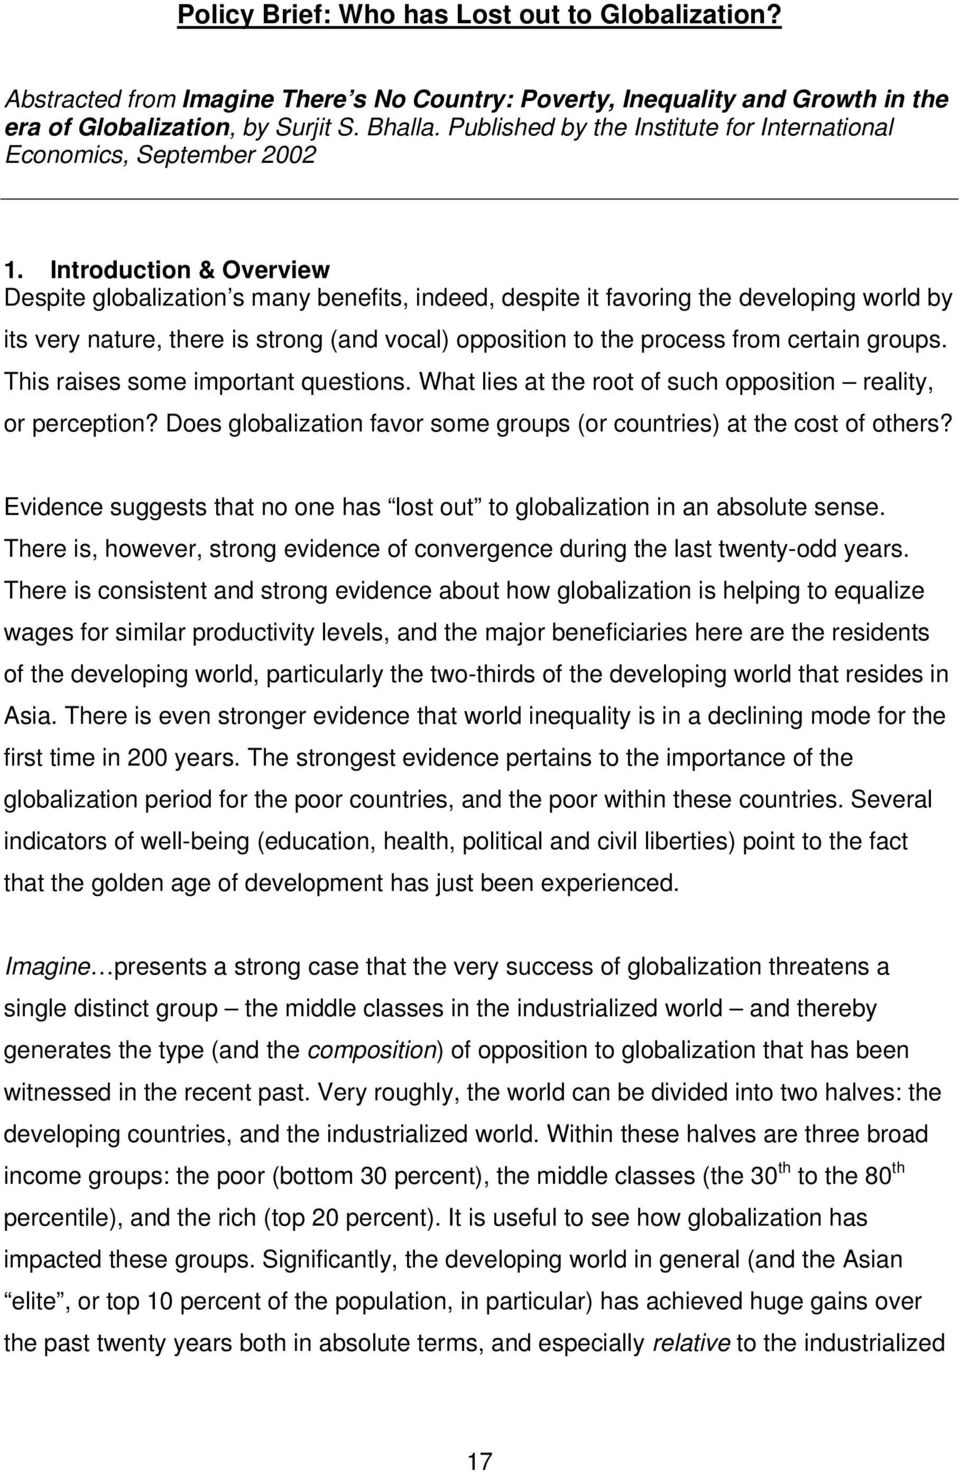 Introduction & Overview Despite globalization s many benefits, indeed, despite it favoring the developing world by its very nature, there is strong (and vocal) opposition to the process from certain